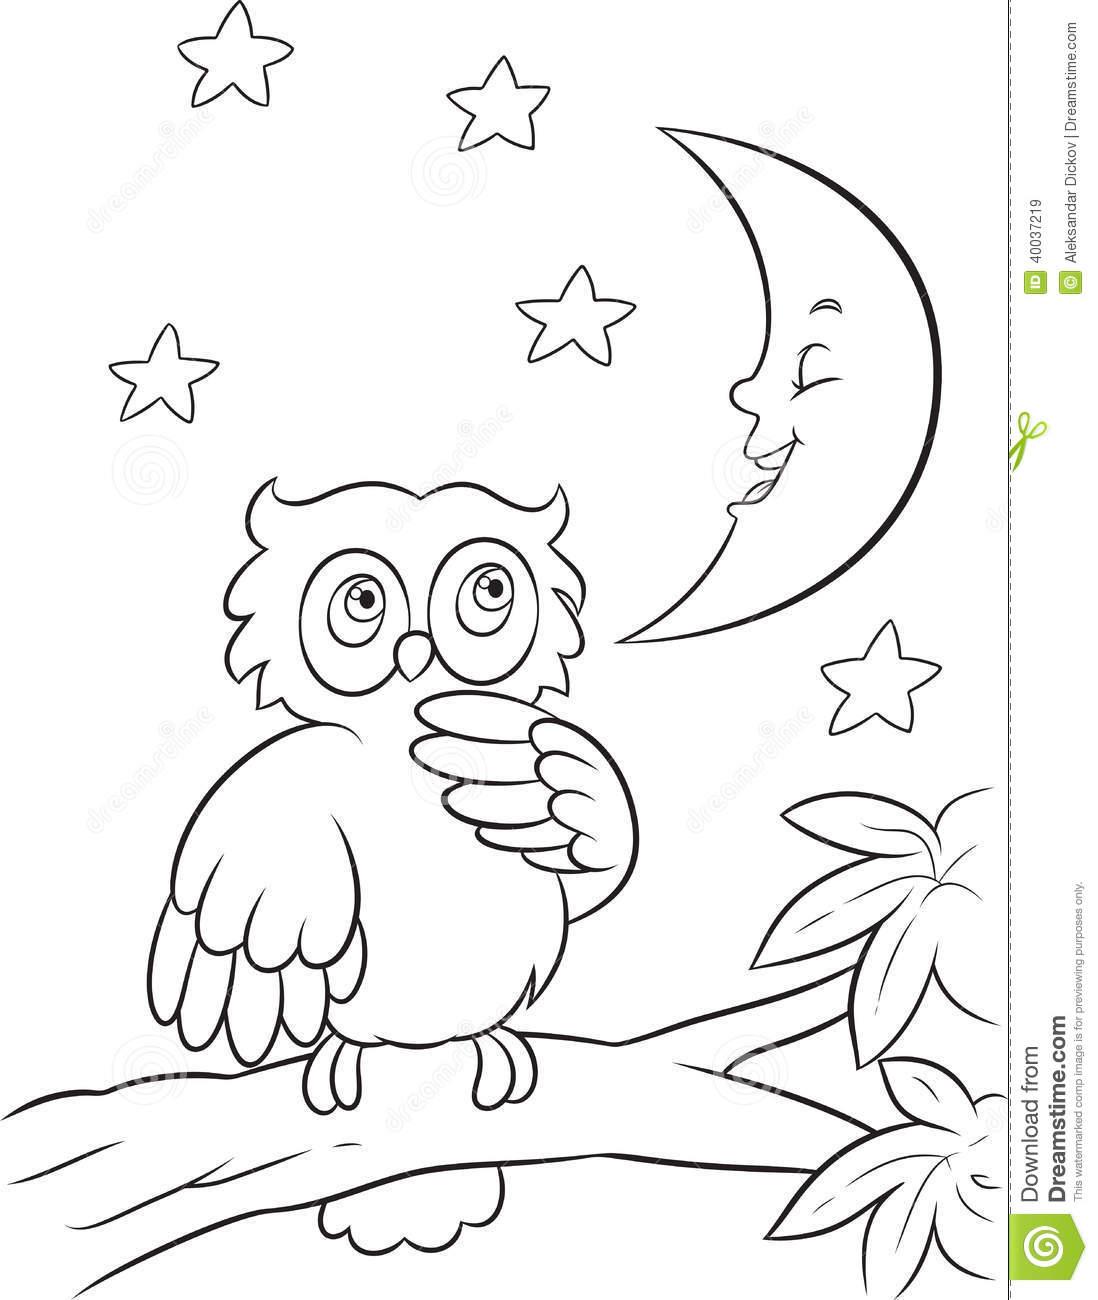 Owl Coloring Page Stock Vector Illustration Of Book